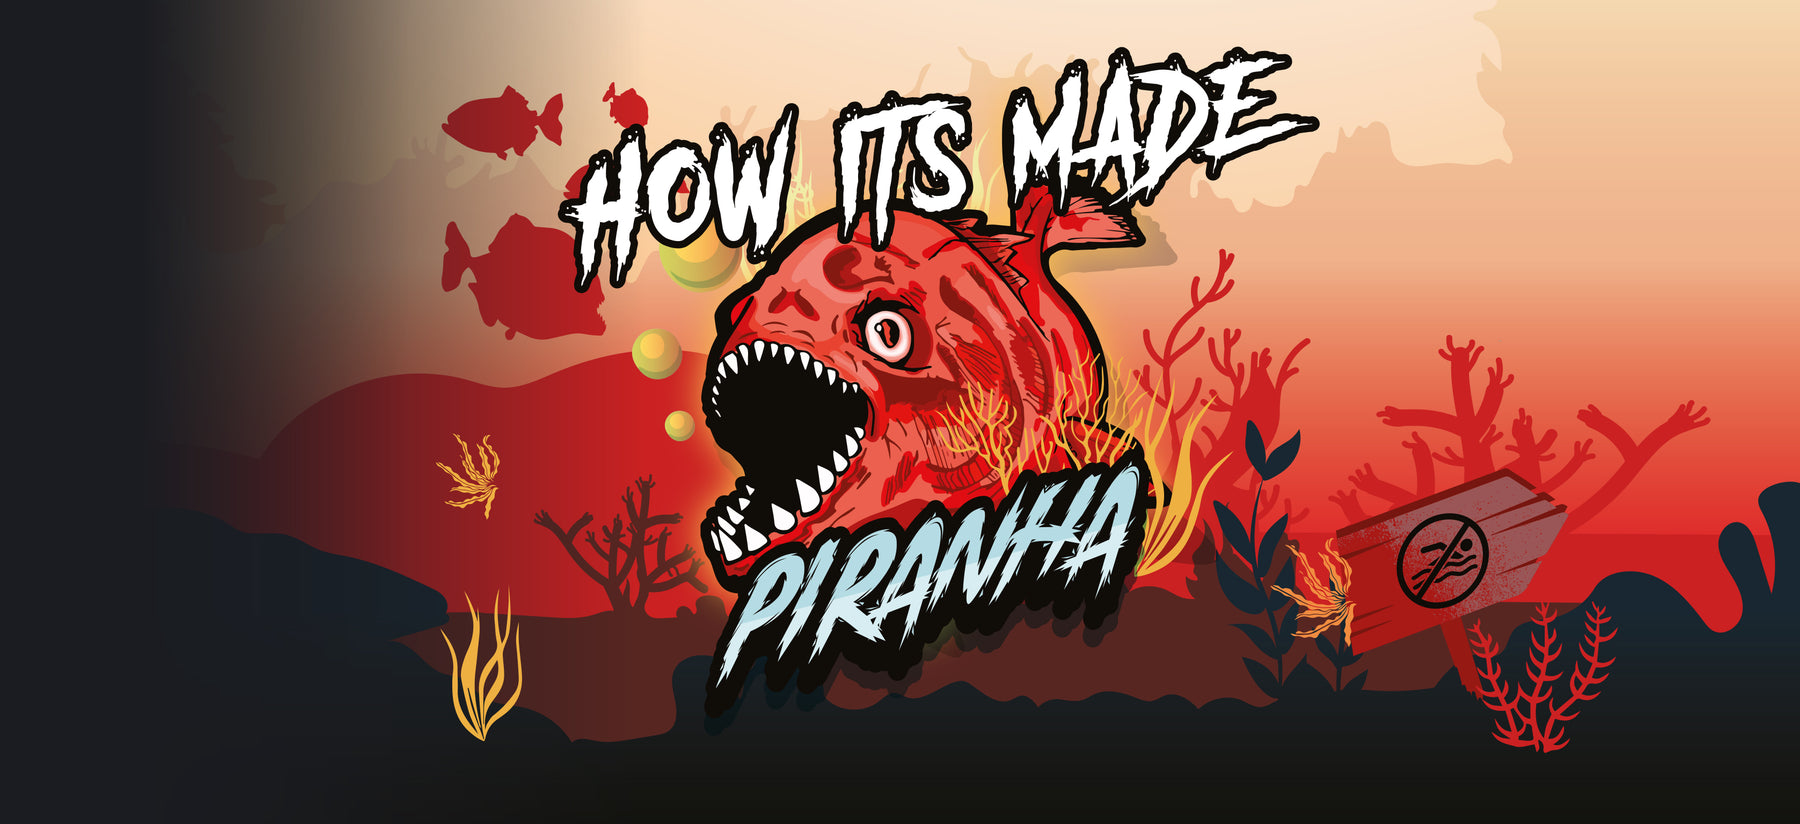 Piranha - How Its Made